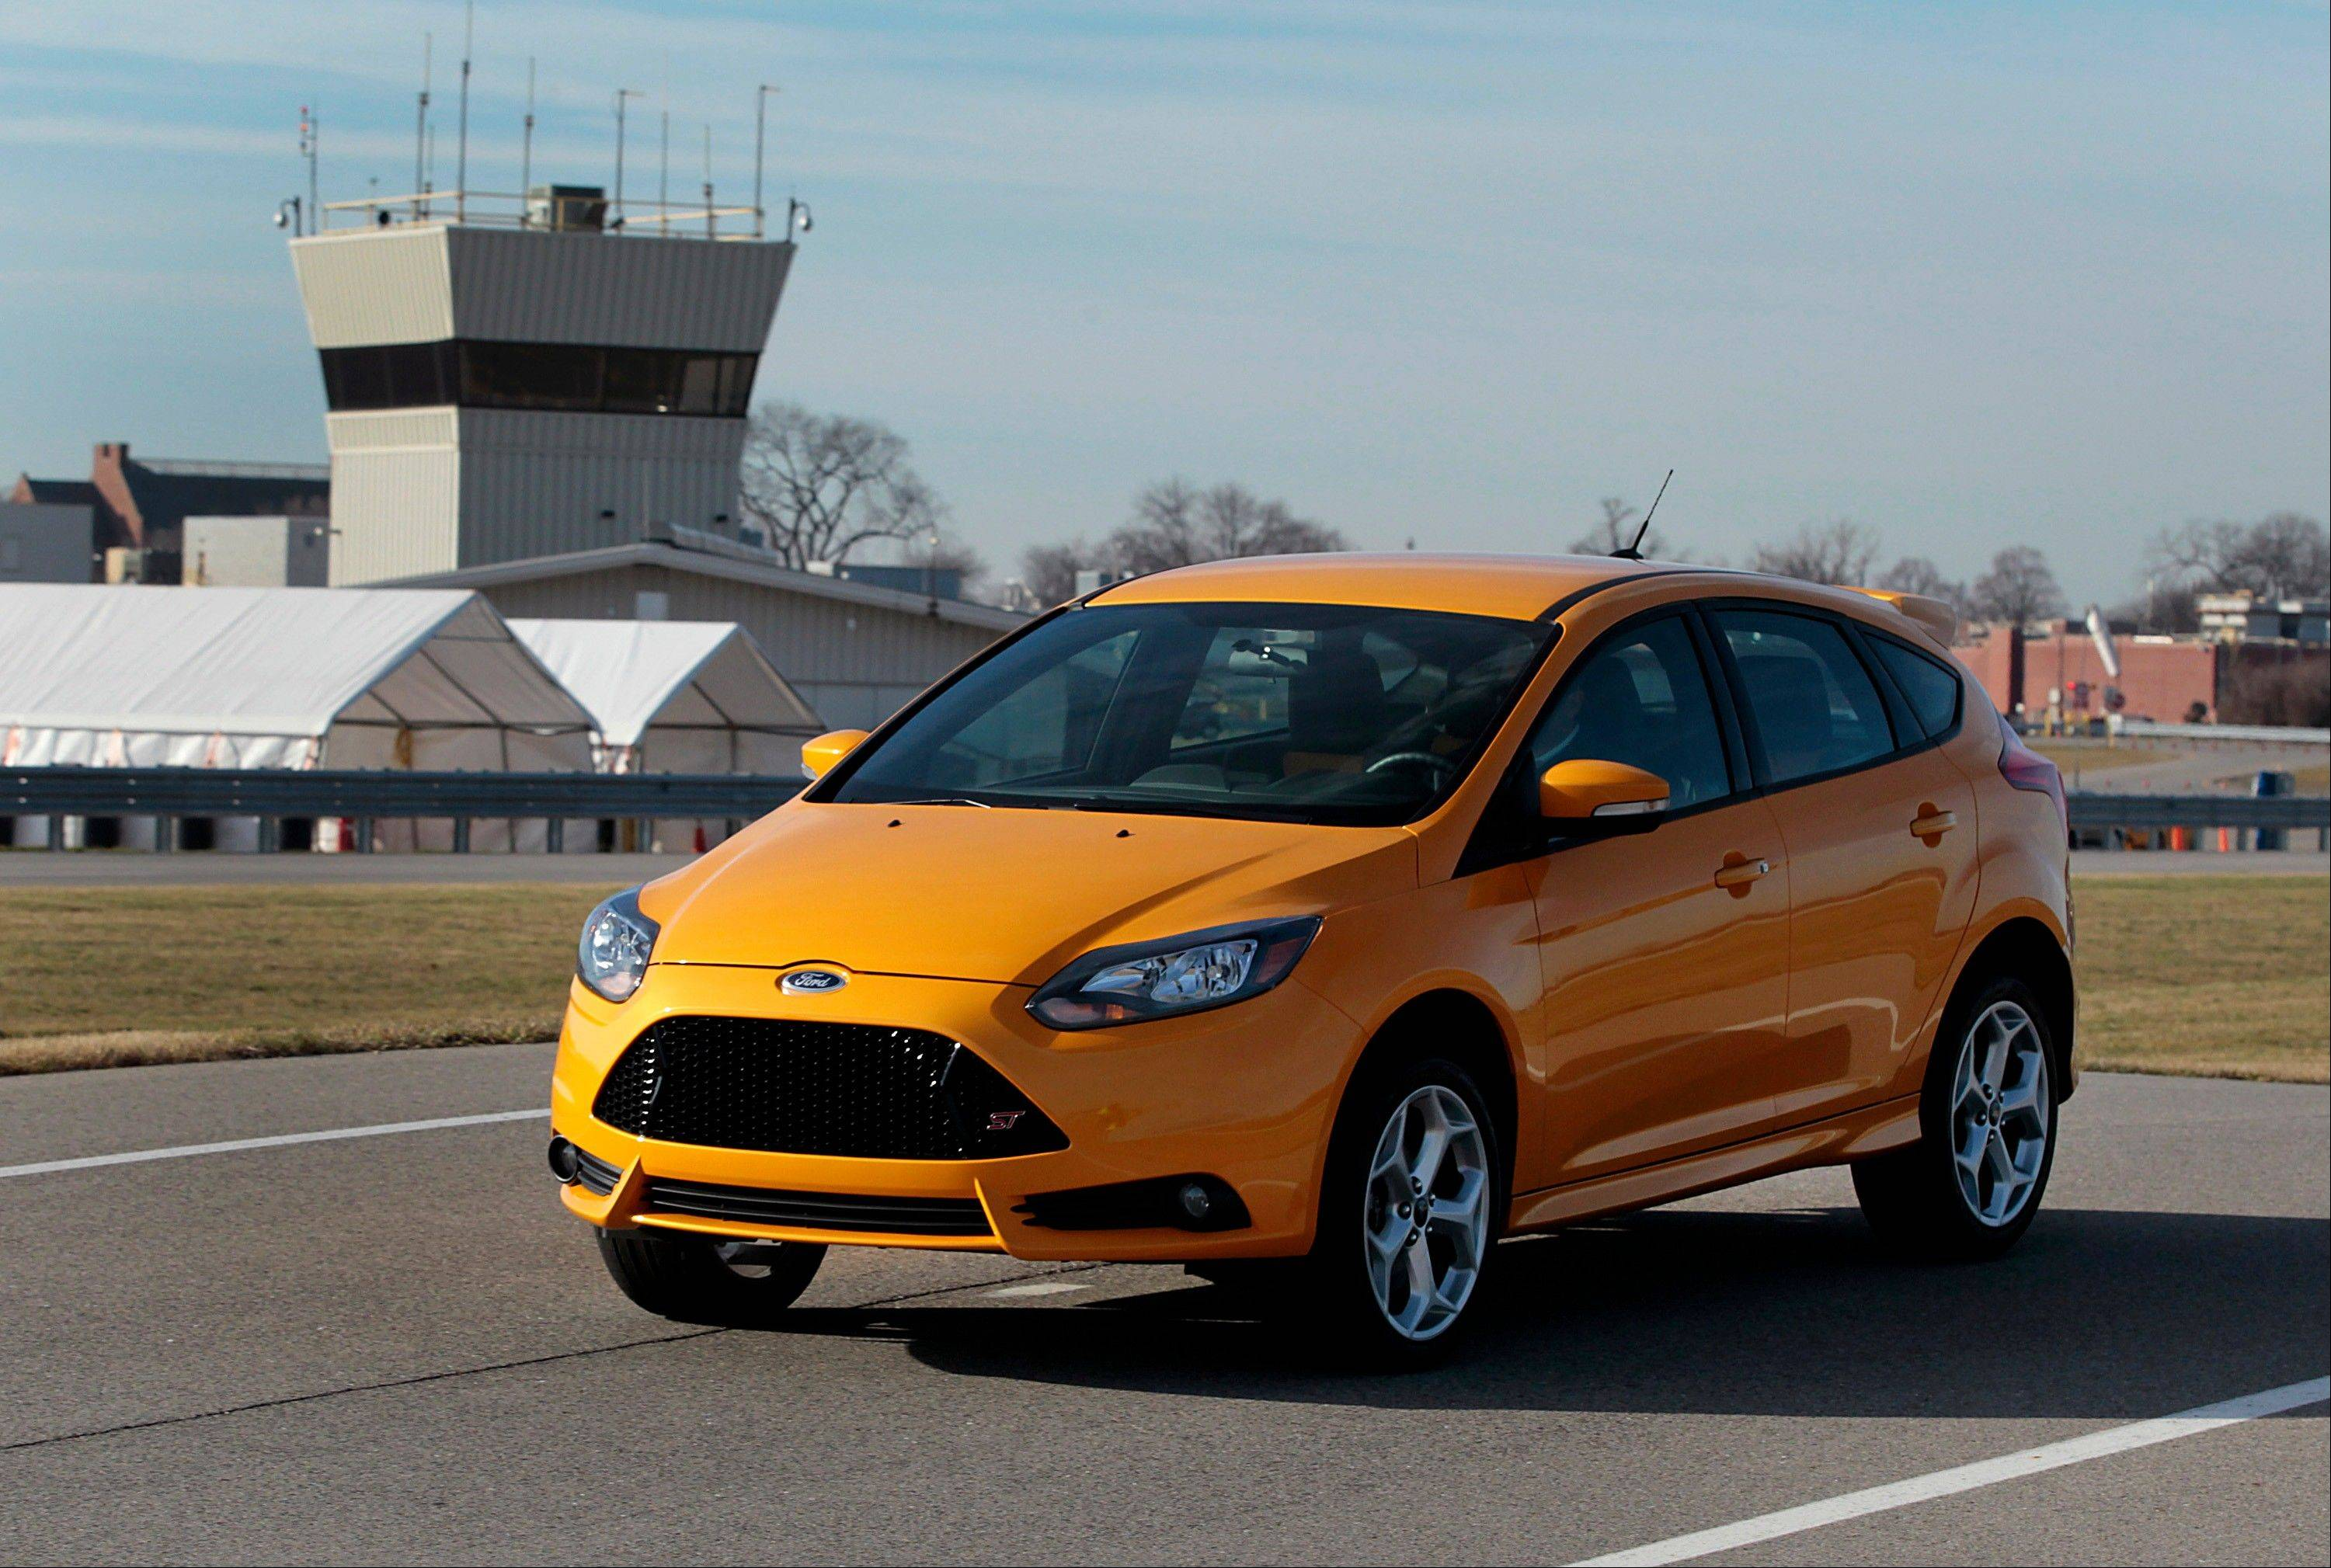 Ford's rankings suffered because of problems with its MyFord Touch and MyLincoln Touch audio, entertainment and navigation systems and defects with models such as the Explorer sport-utility vehicle and Fiesta and Focus cars, Consumer Reports said in October.